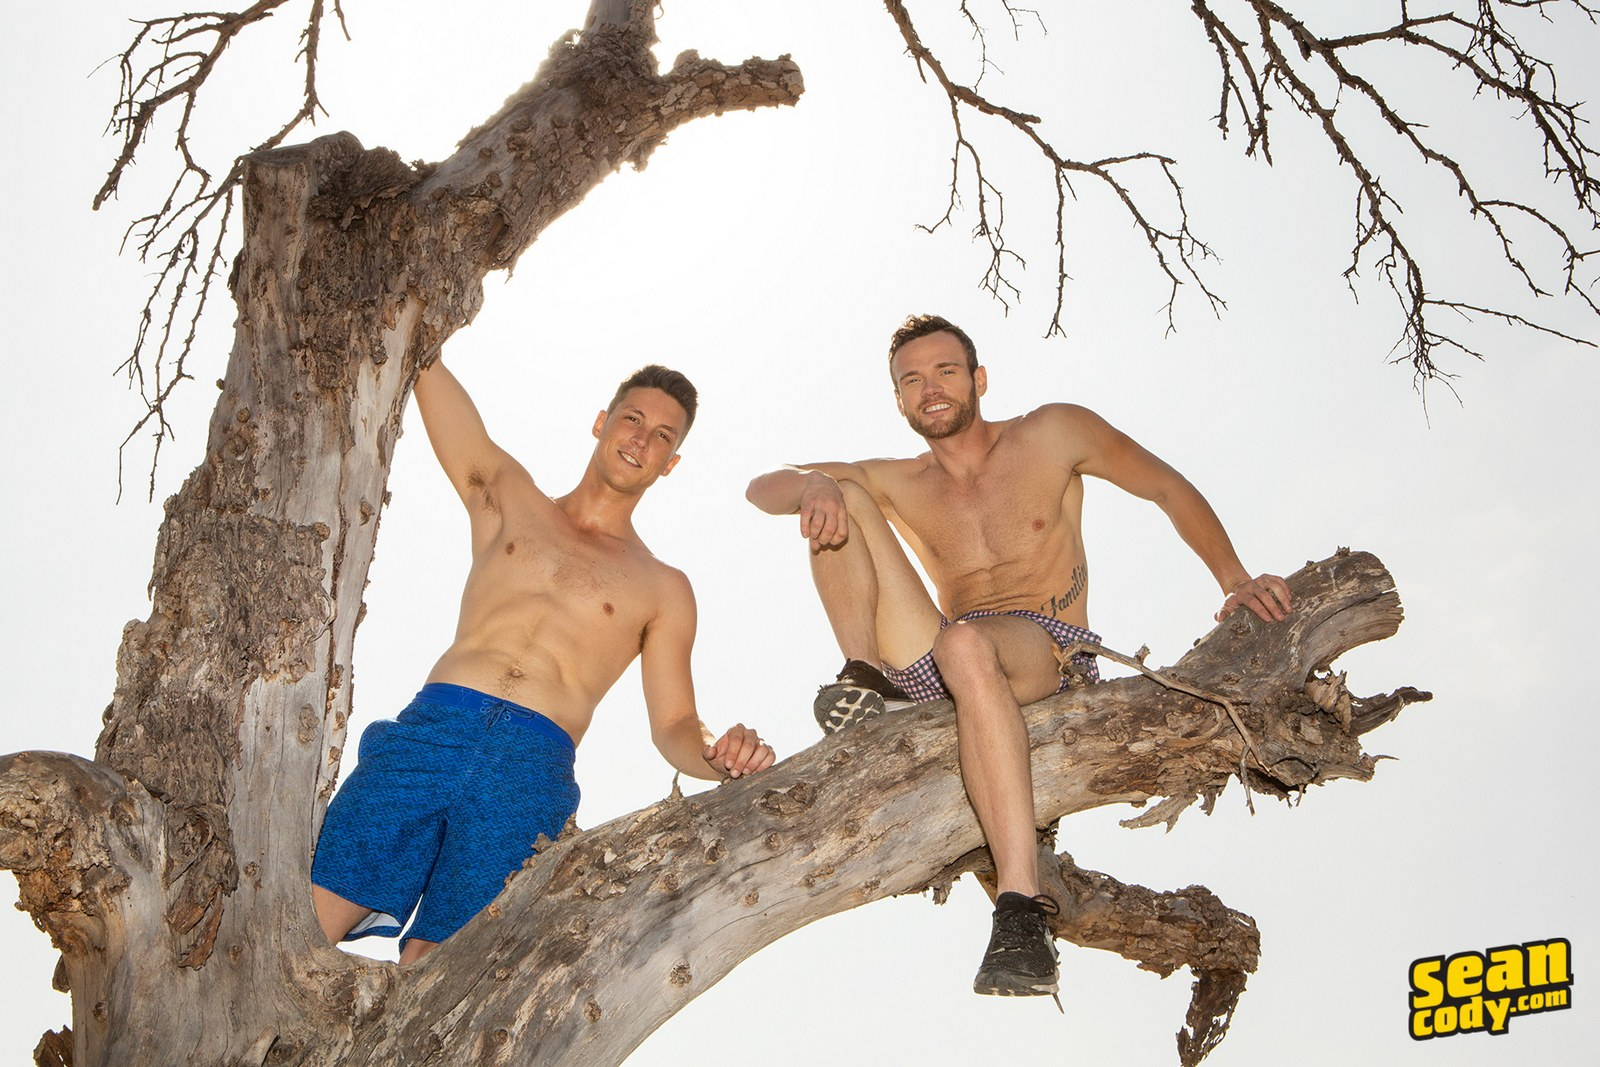 American gay studs from Sean Cody